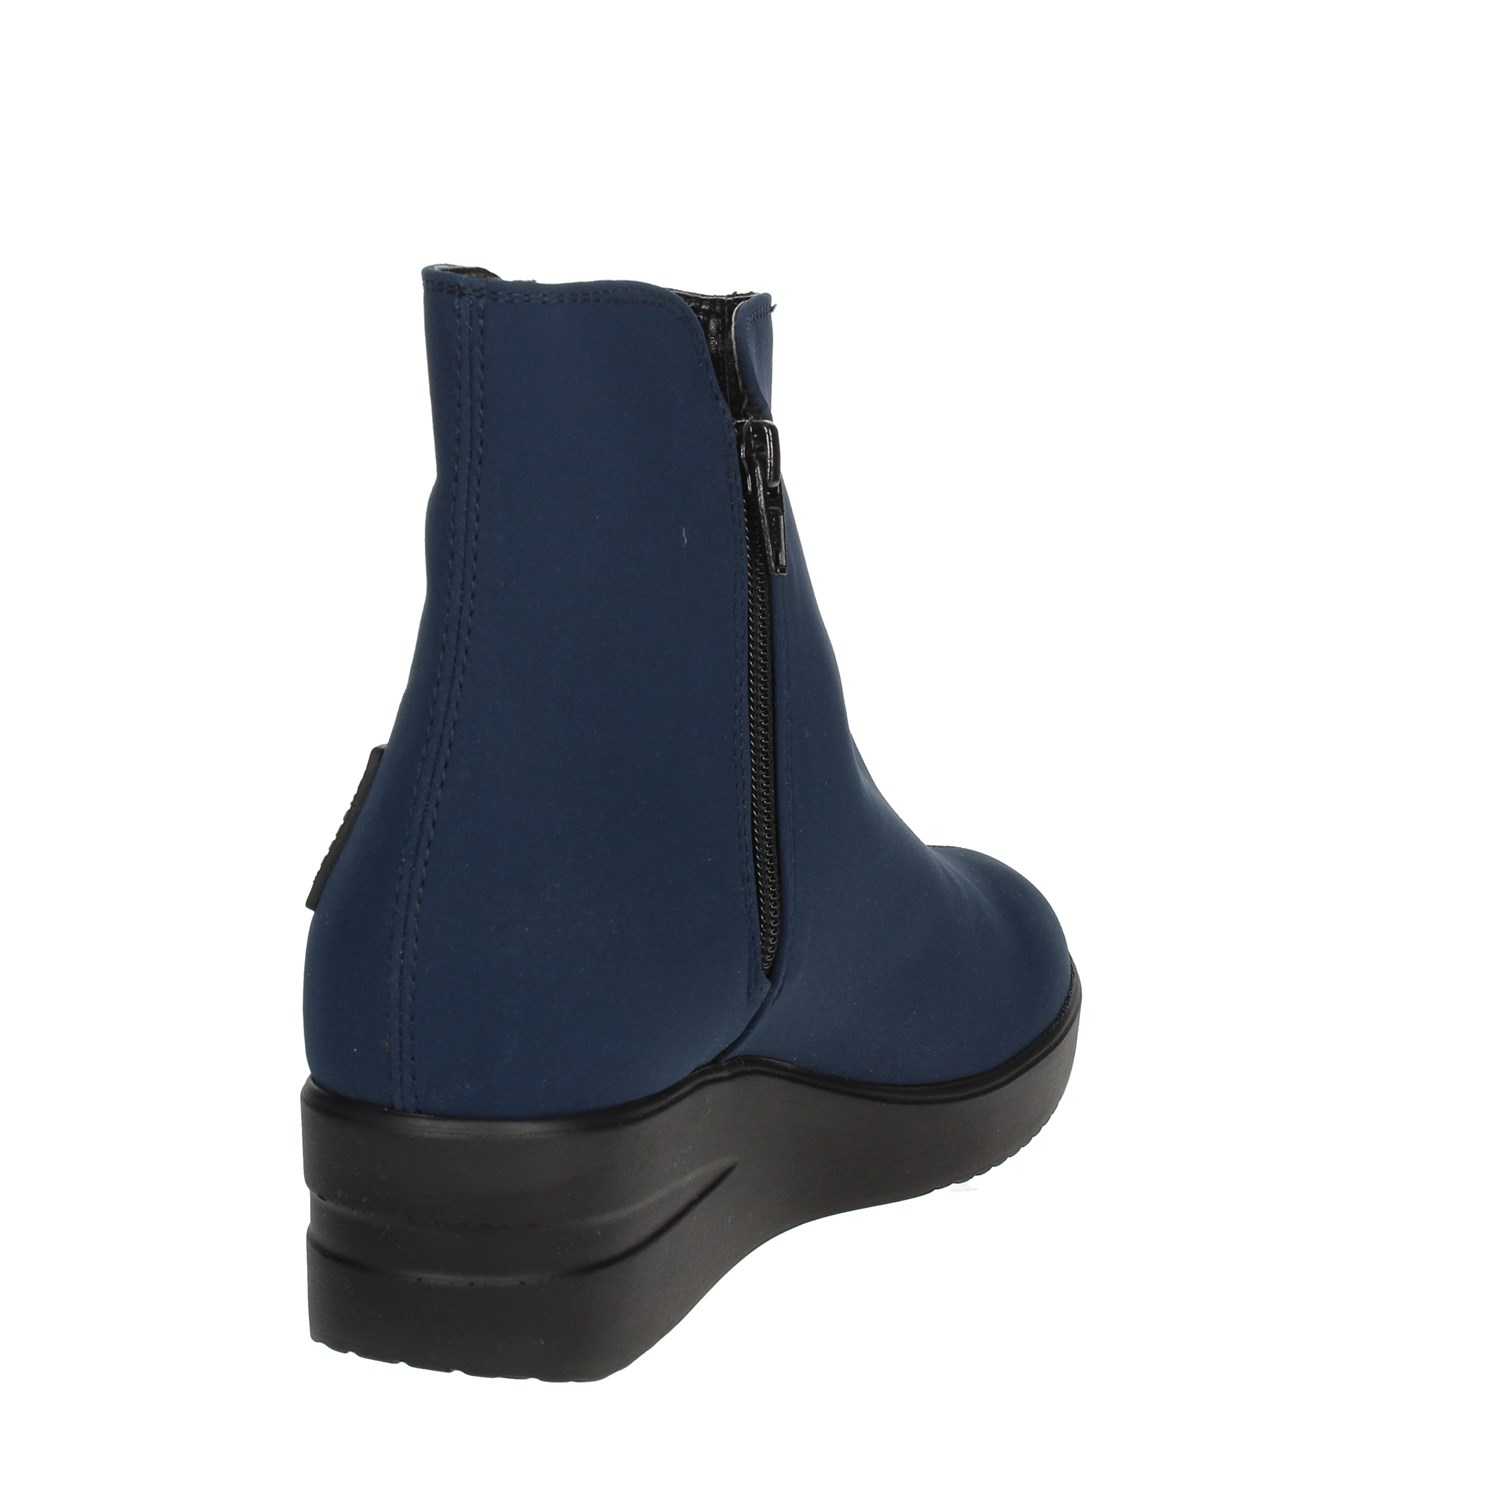 Agile By By By Rucoline  211-33 blue Stivaletti Zeppa women Autunno Inverno c0281f